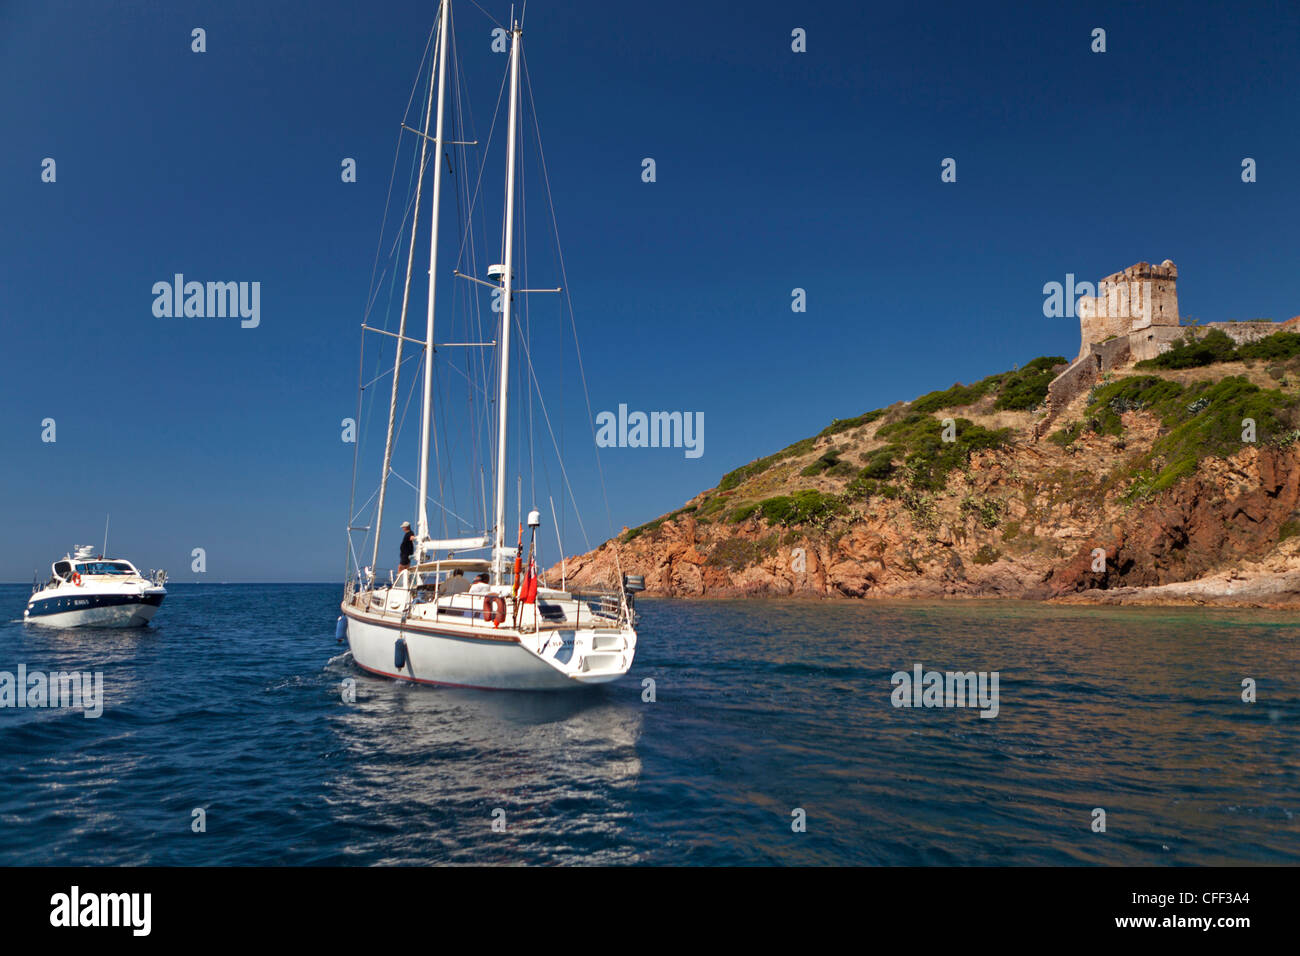 Boat anchored by a Genoese Tower, village of Girolata, Corsica, France - Stock Image